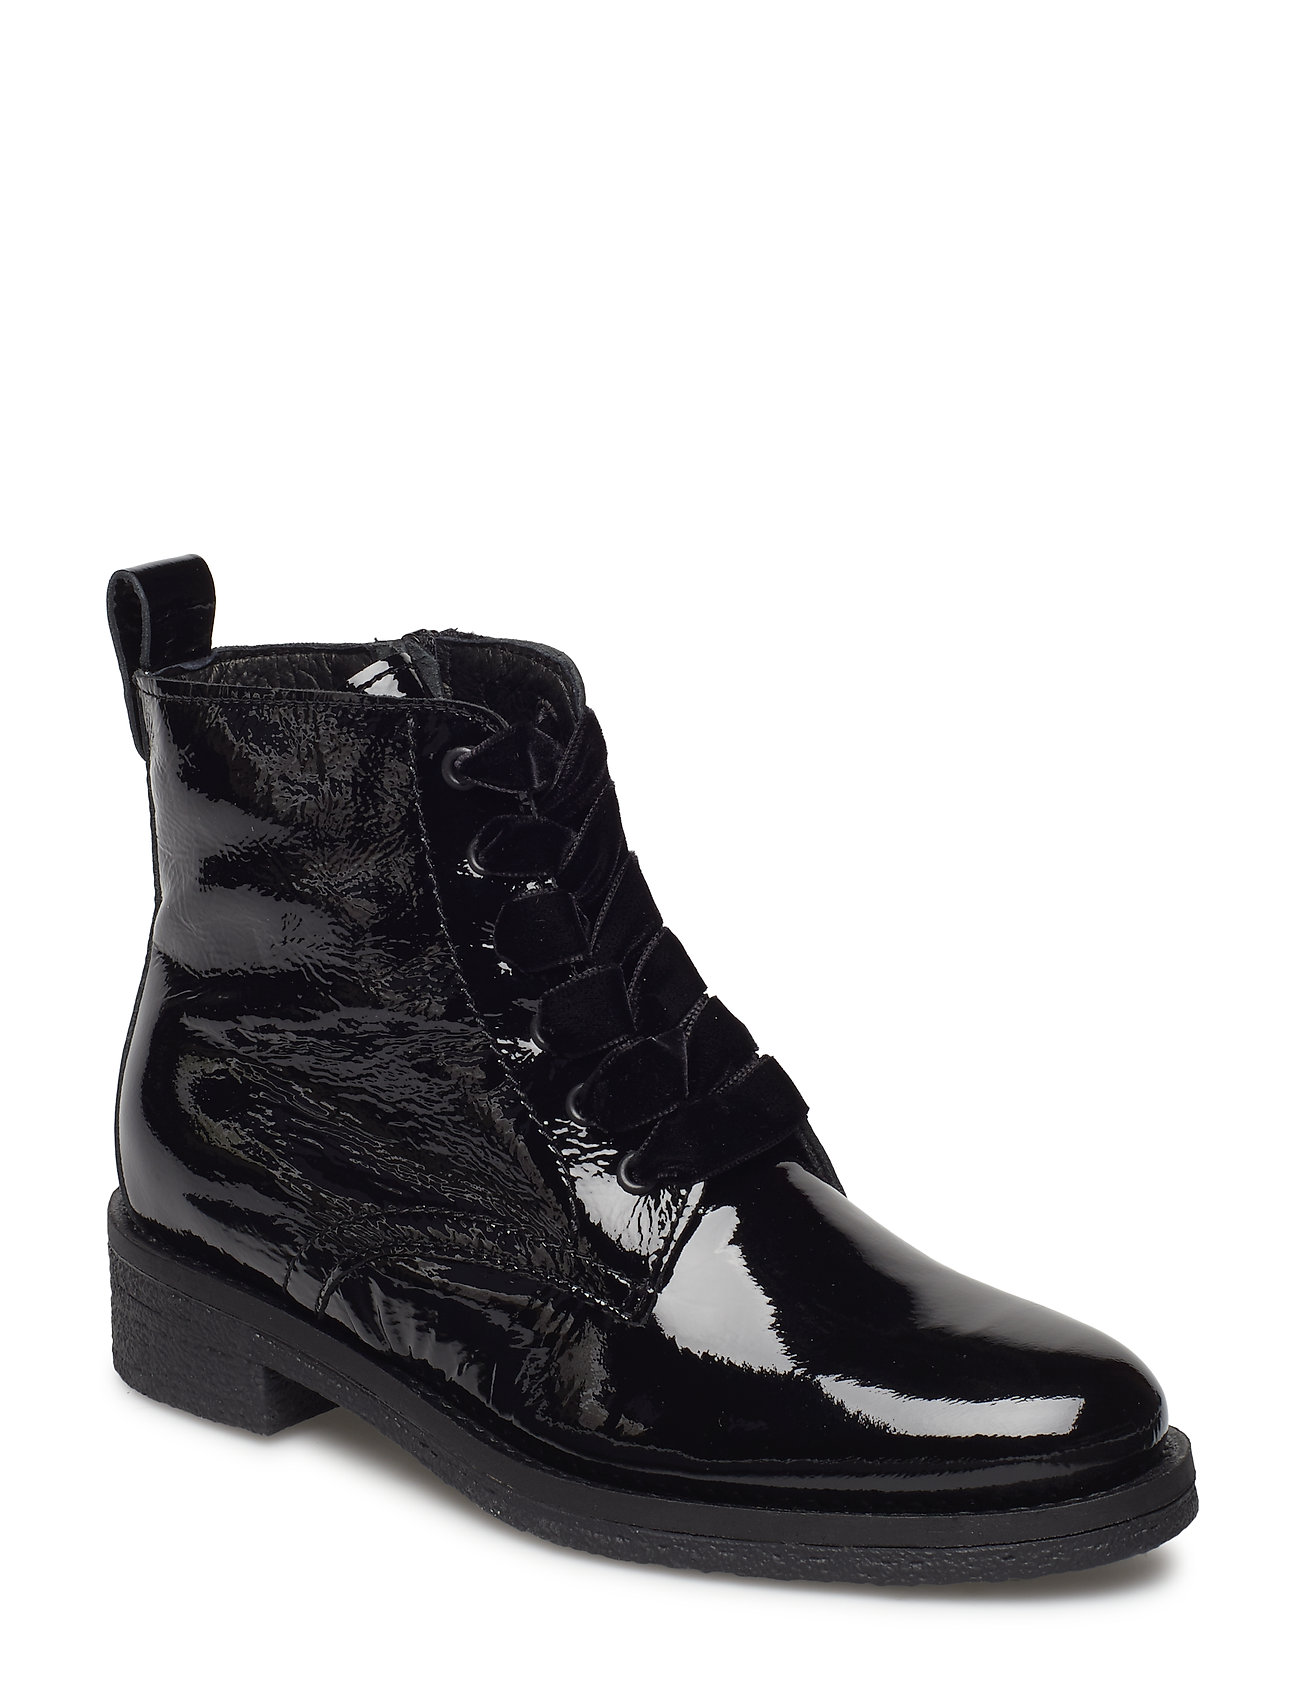 Image of Biatine Patent Laced Up Boot Shoes Boots Ankle Boots Ankle Boots Flat Heel Sort Bianco (3229390791)